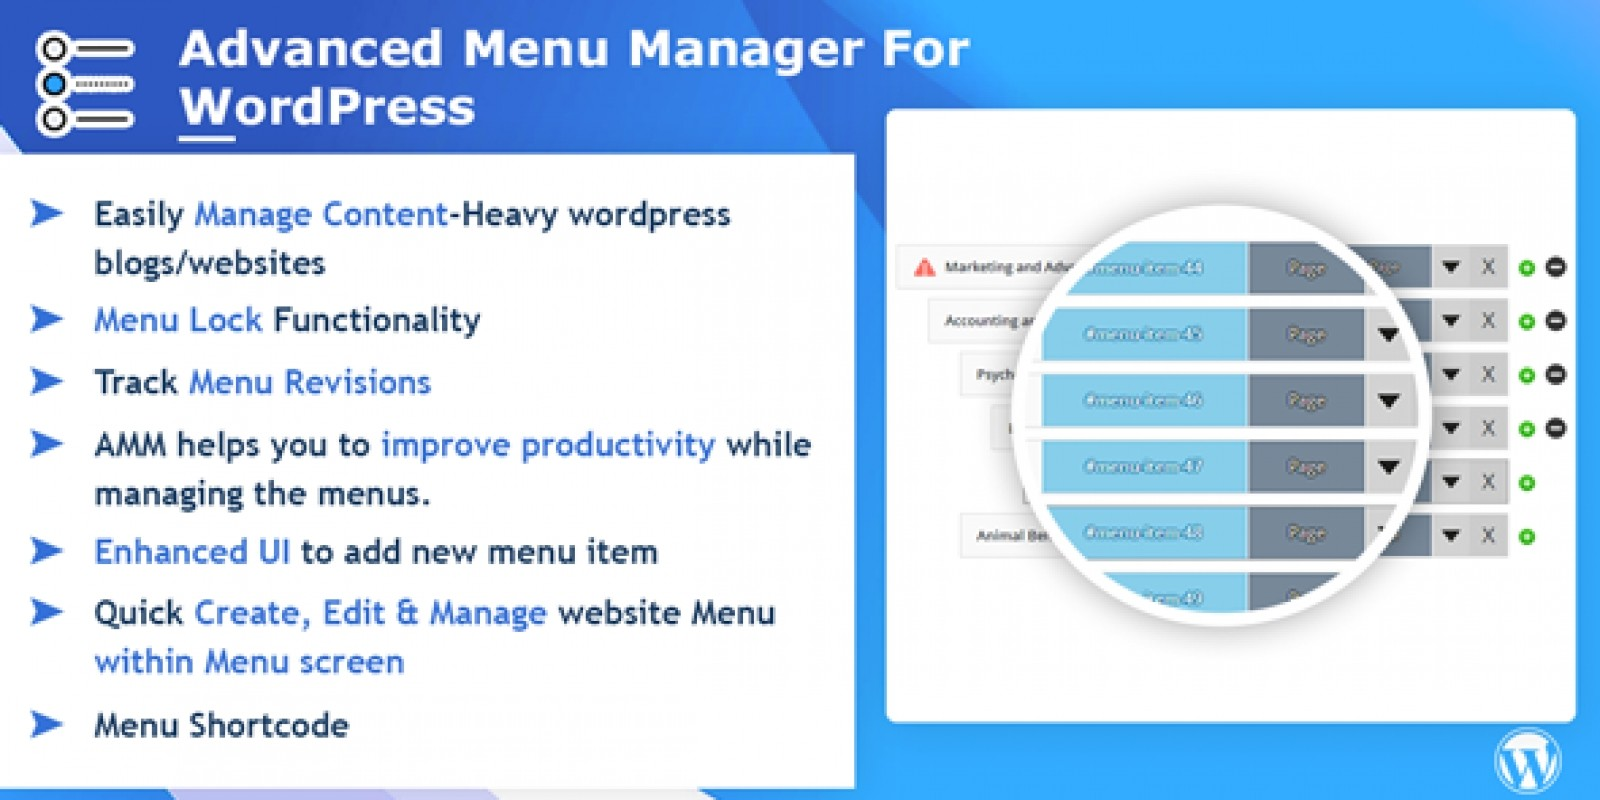 Advance Menu Manager For WordPress